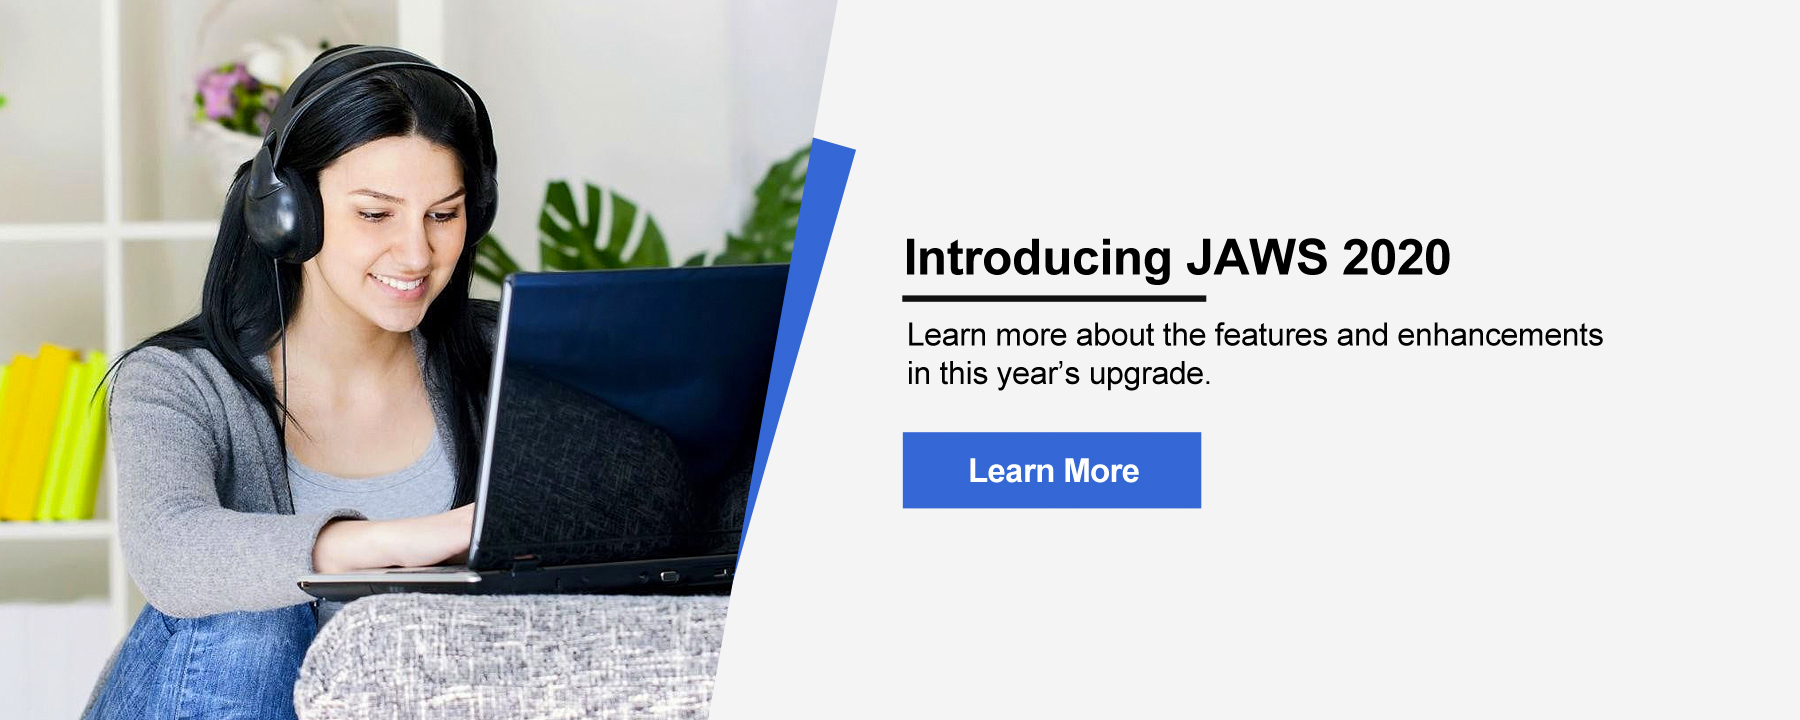 Introducing JAWS 2020. Learn more about the features and enhancements in this year's upgrade.